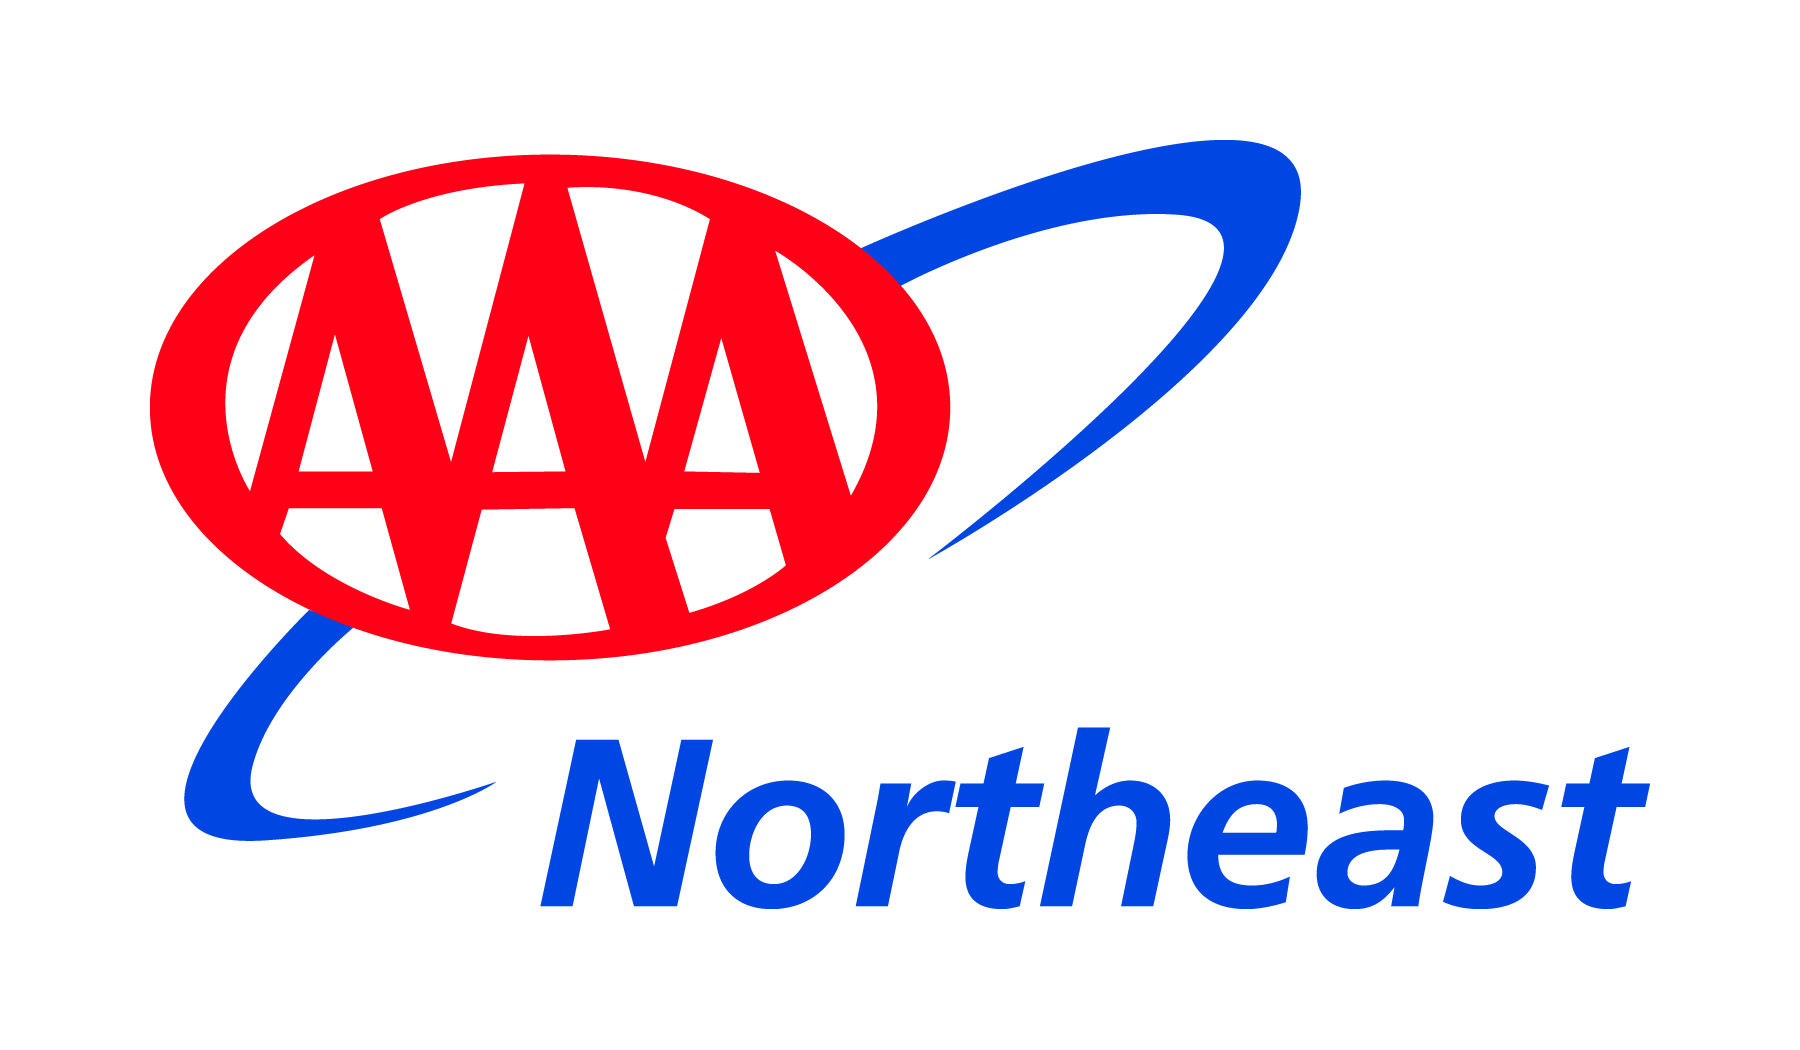 AAA Northeast Logo